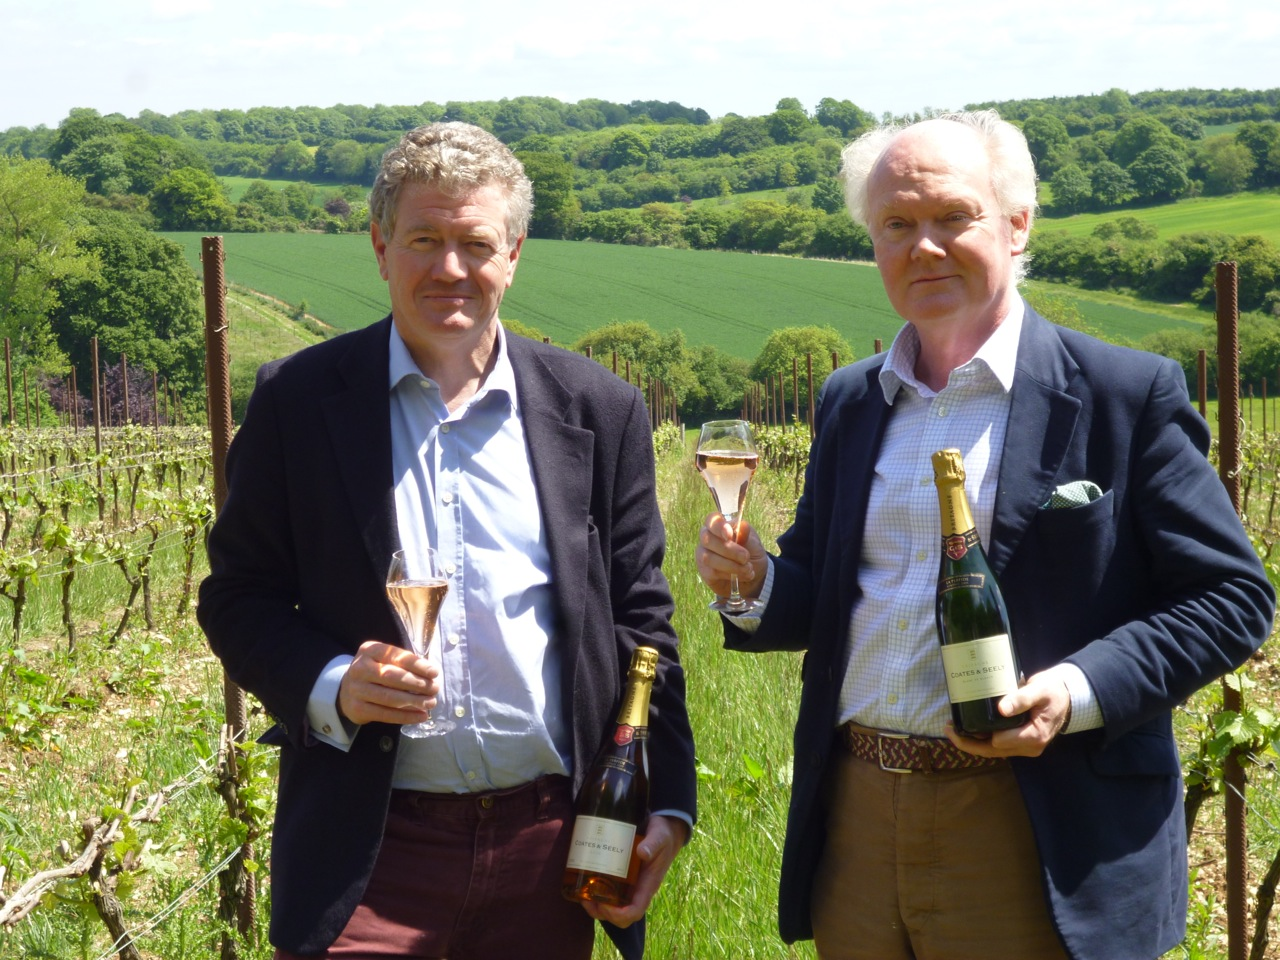 English winemakers Coates & Seely